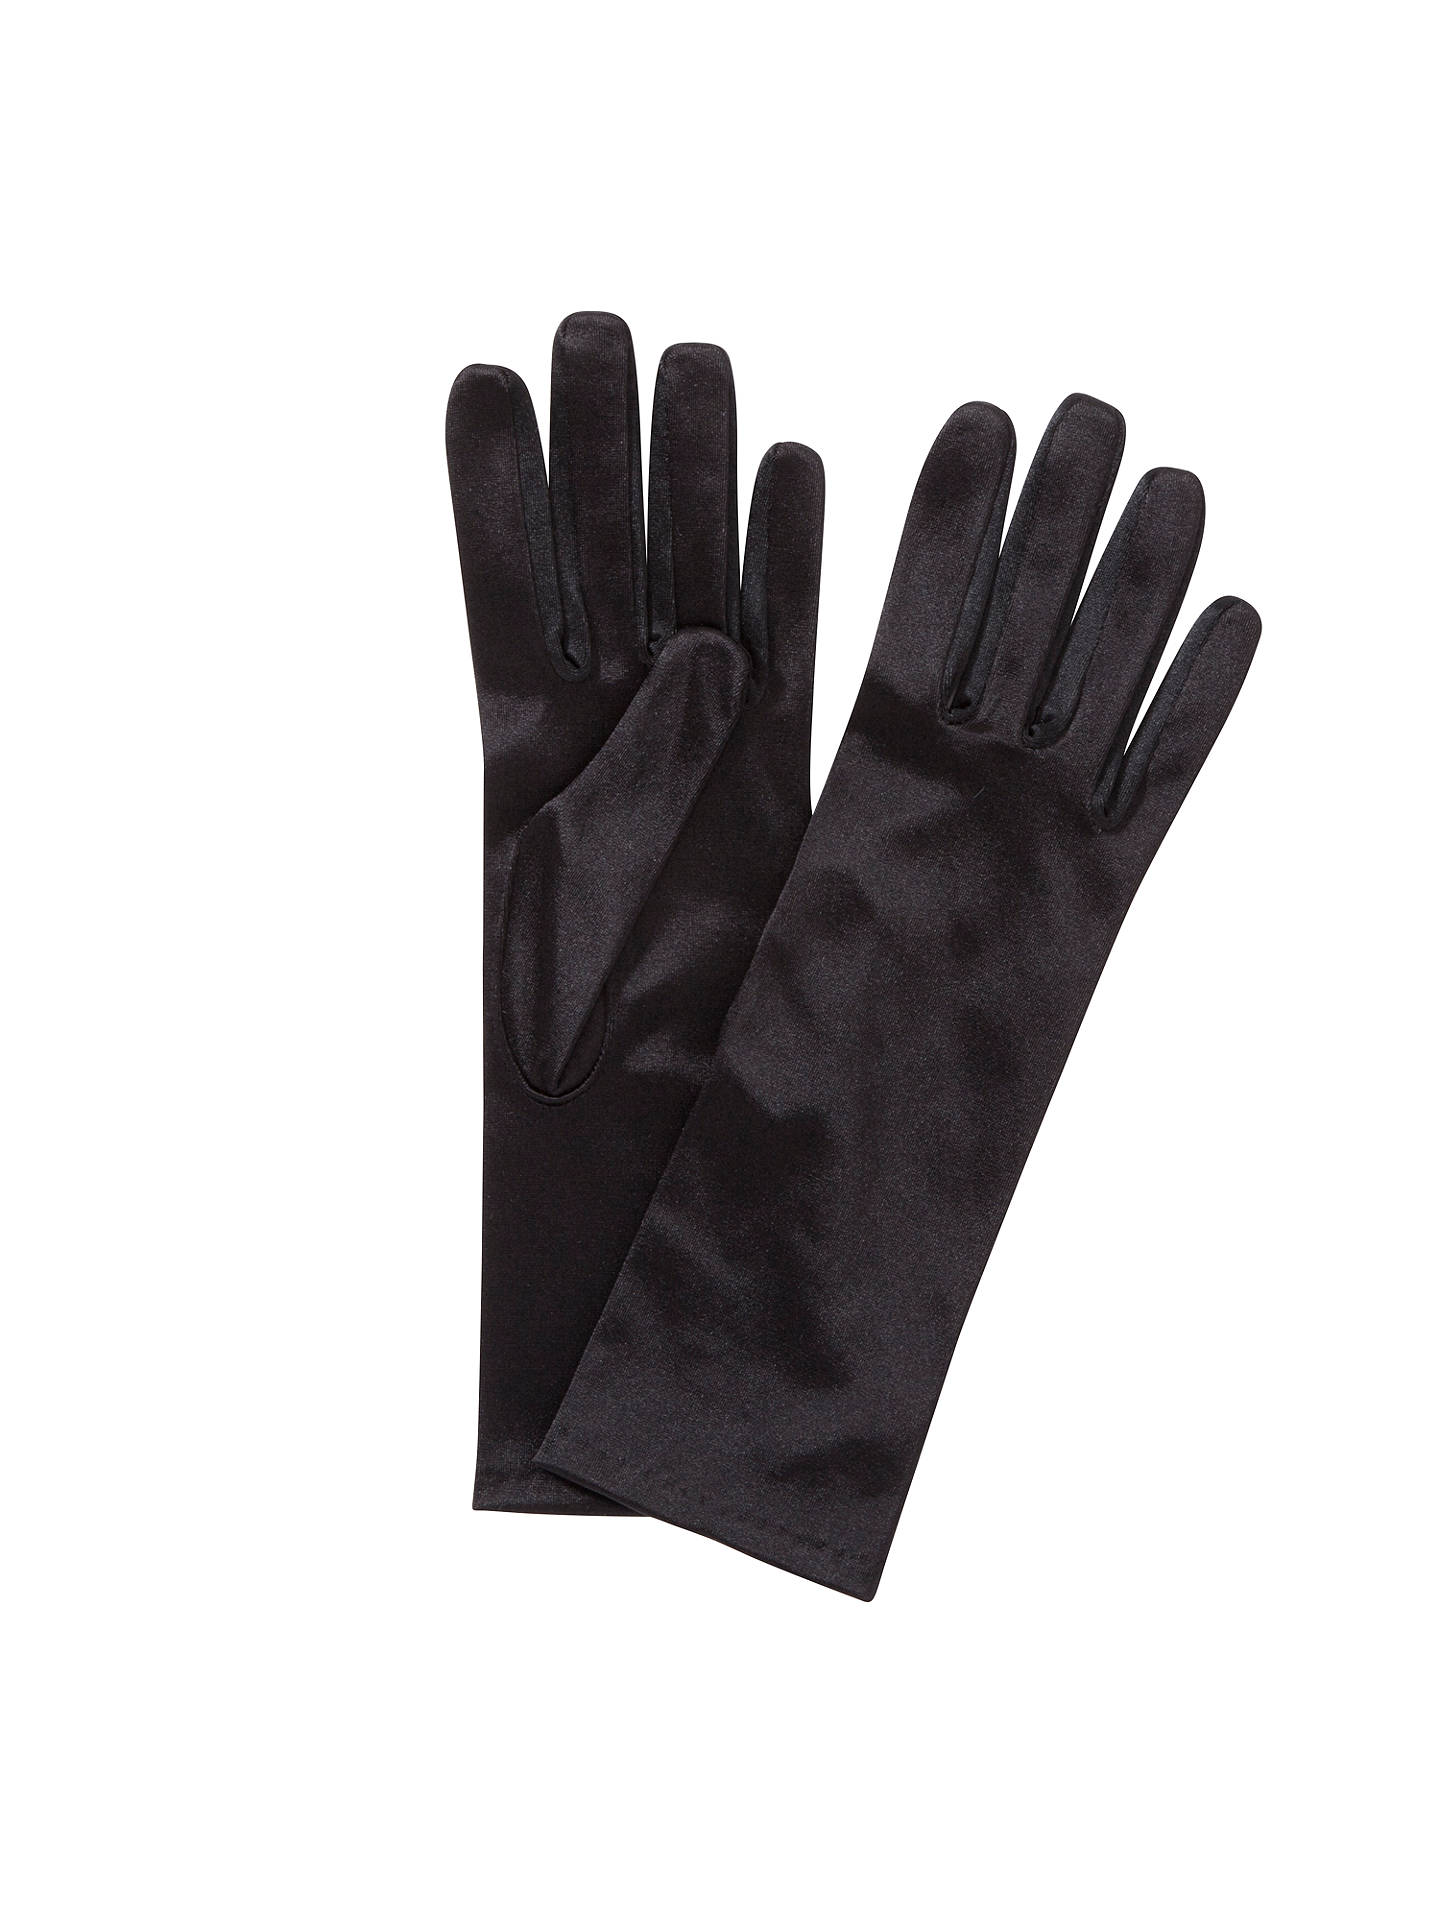 BuyJohn Lewis Satin Evening Gloves, Black Online at johnlewis.com